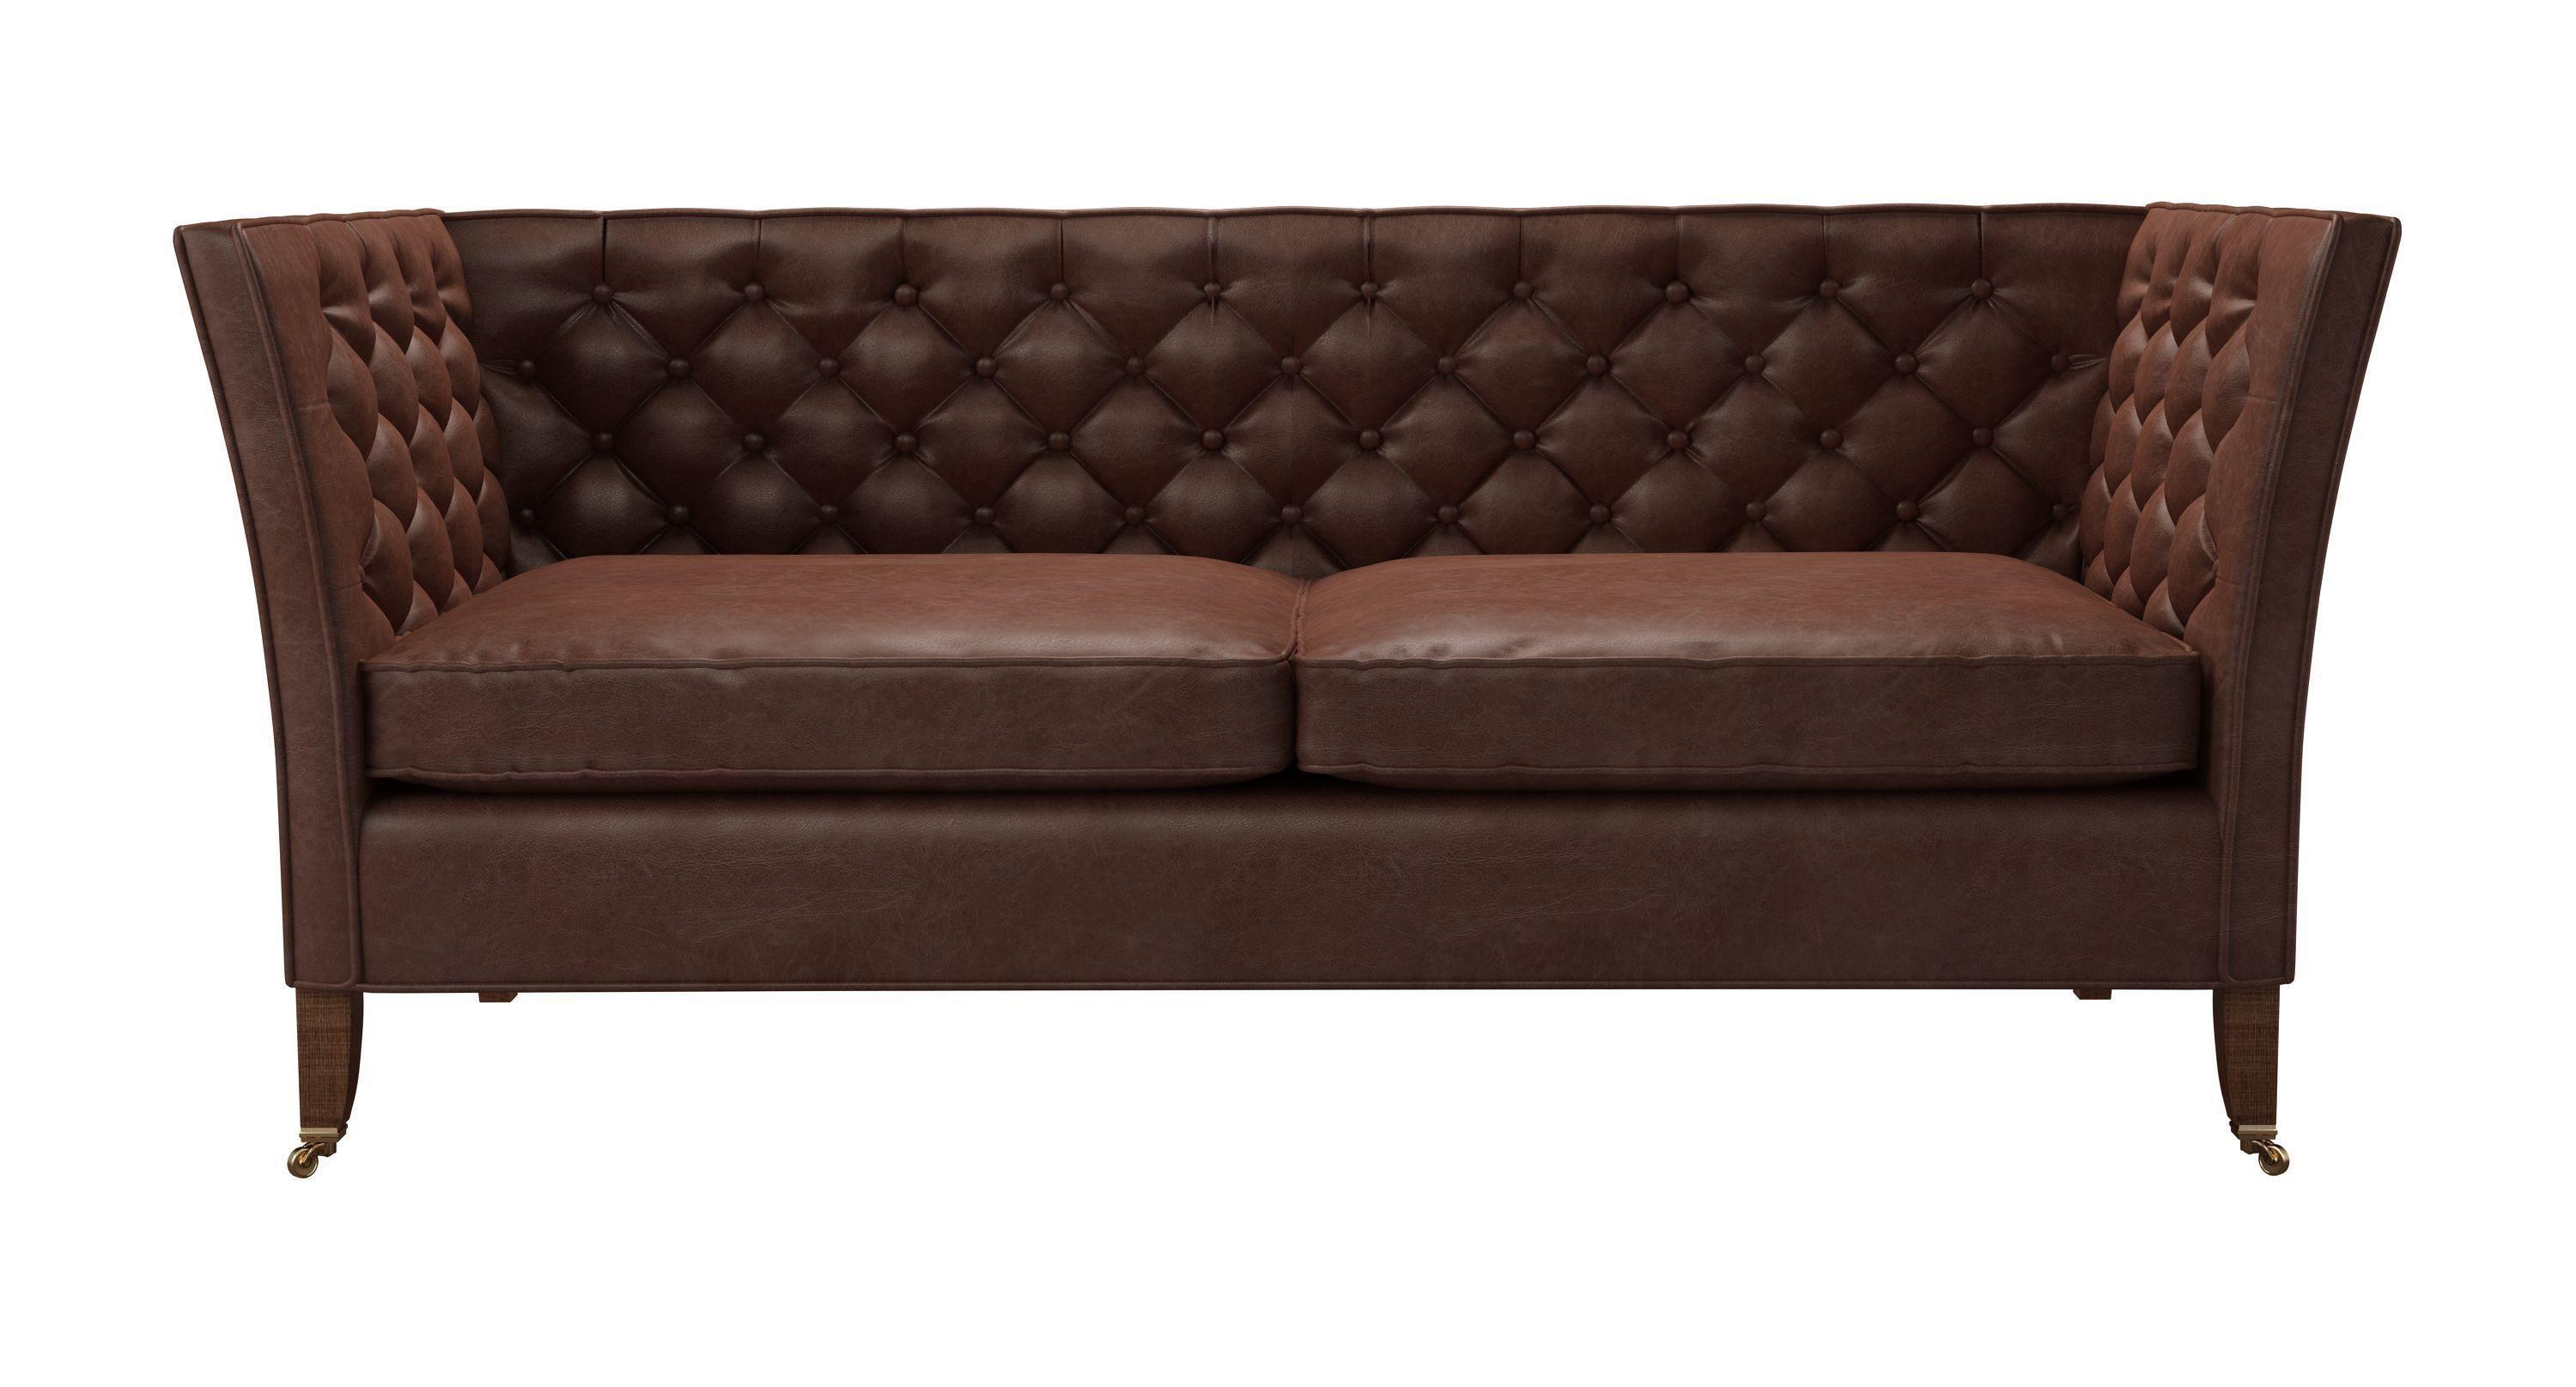 Descartes 2 5 Seat Sofa In Satchel Vintage Leather Sofa Old Sofa Sofa Drawing